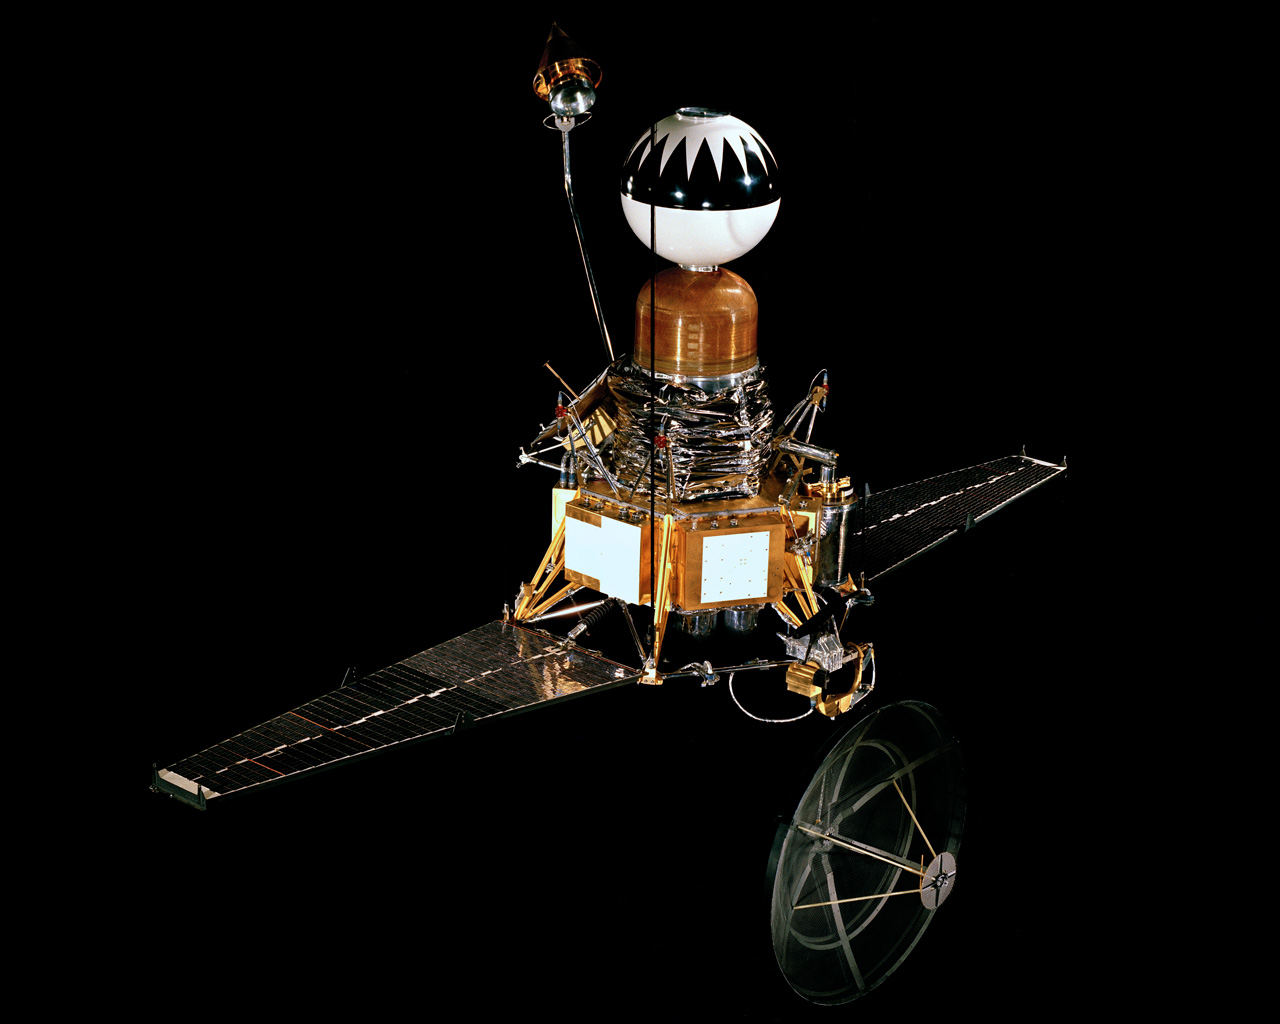 Photo of spacecraft with a black background.